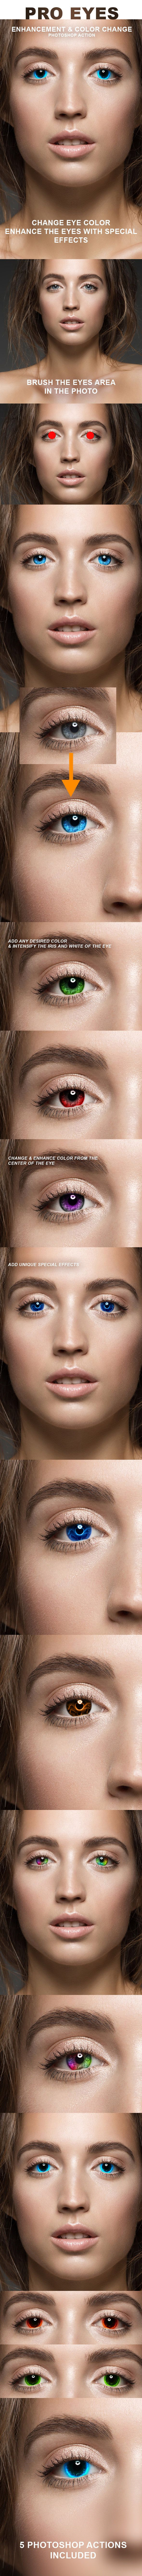 Pro Eyes Enhancement & Color Change - PS Action